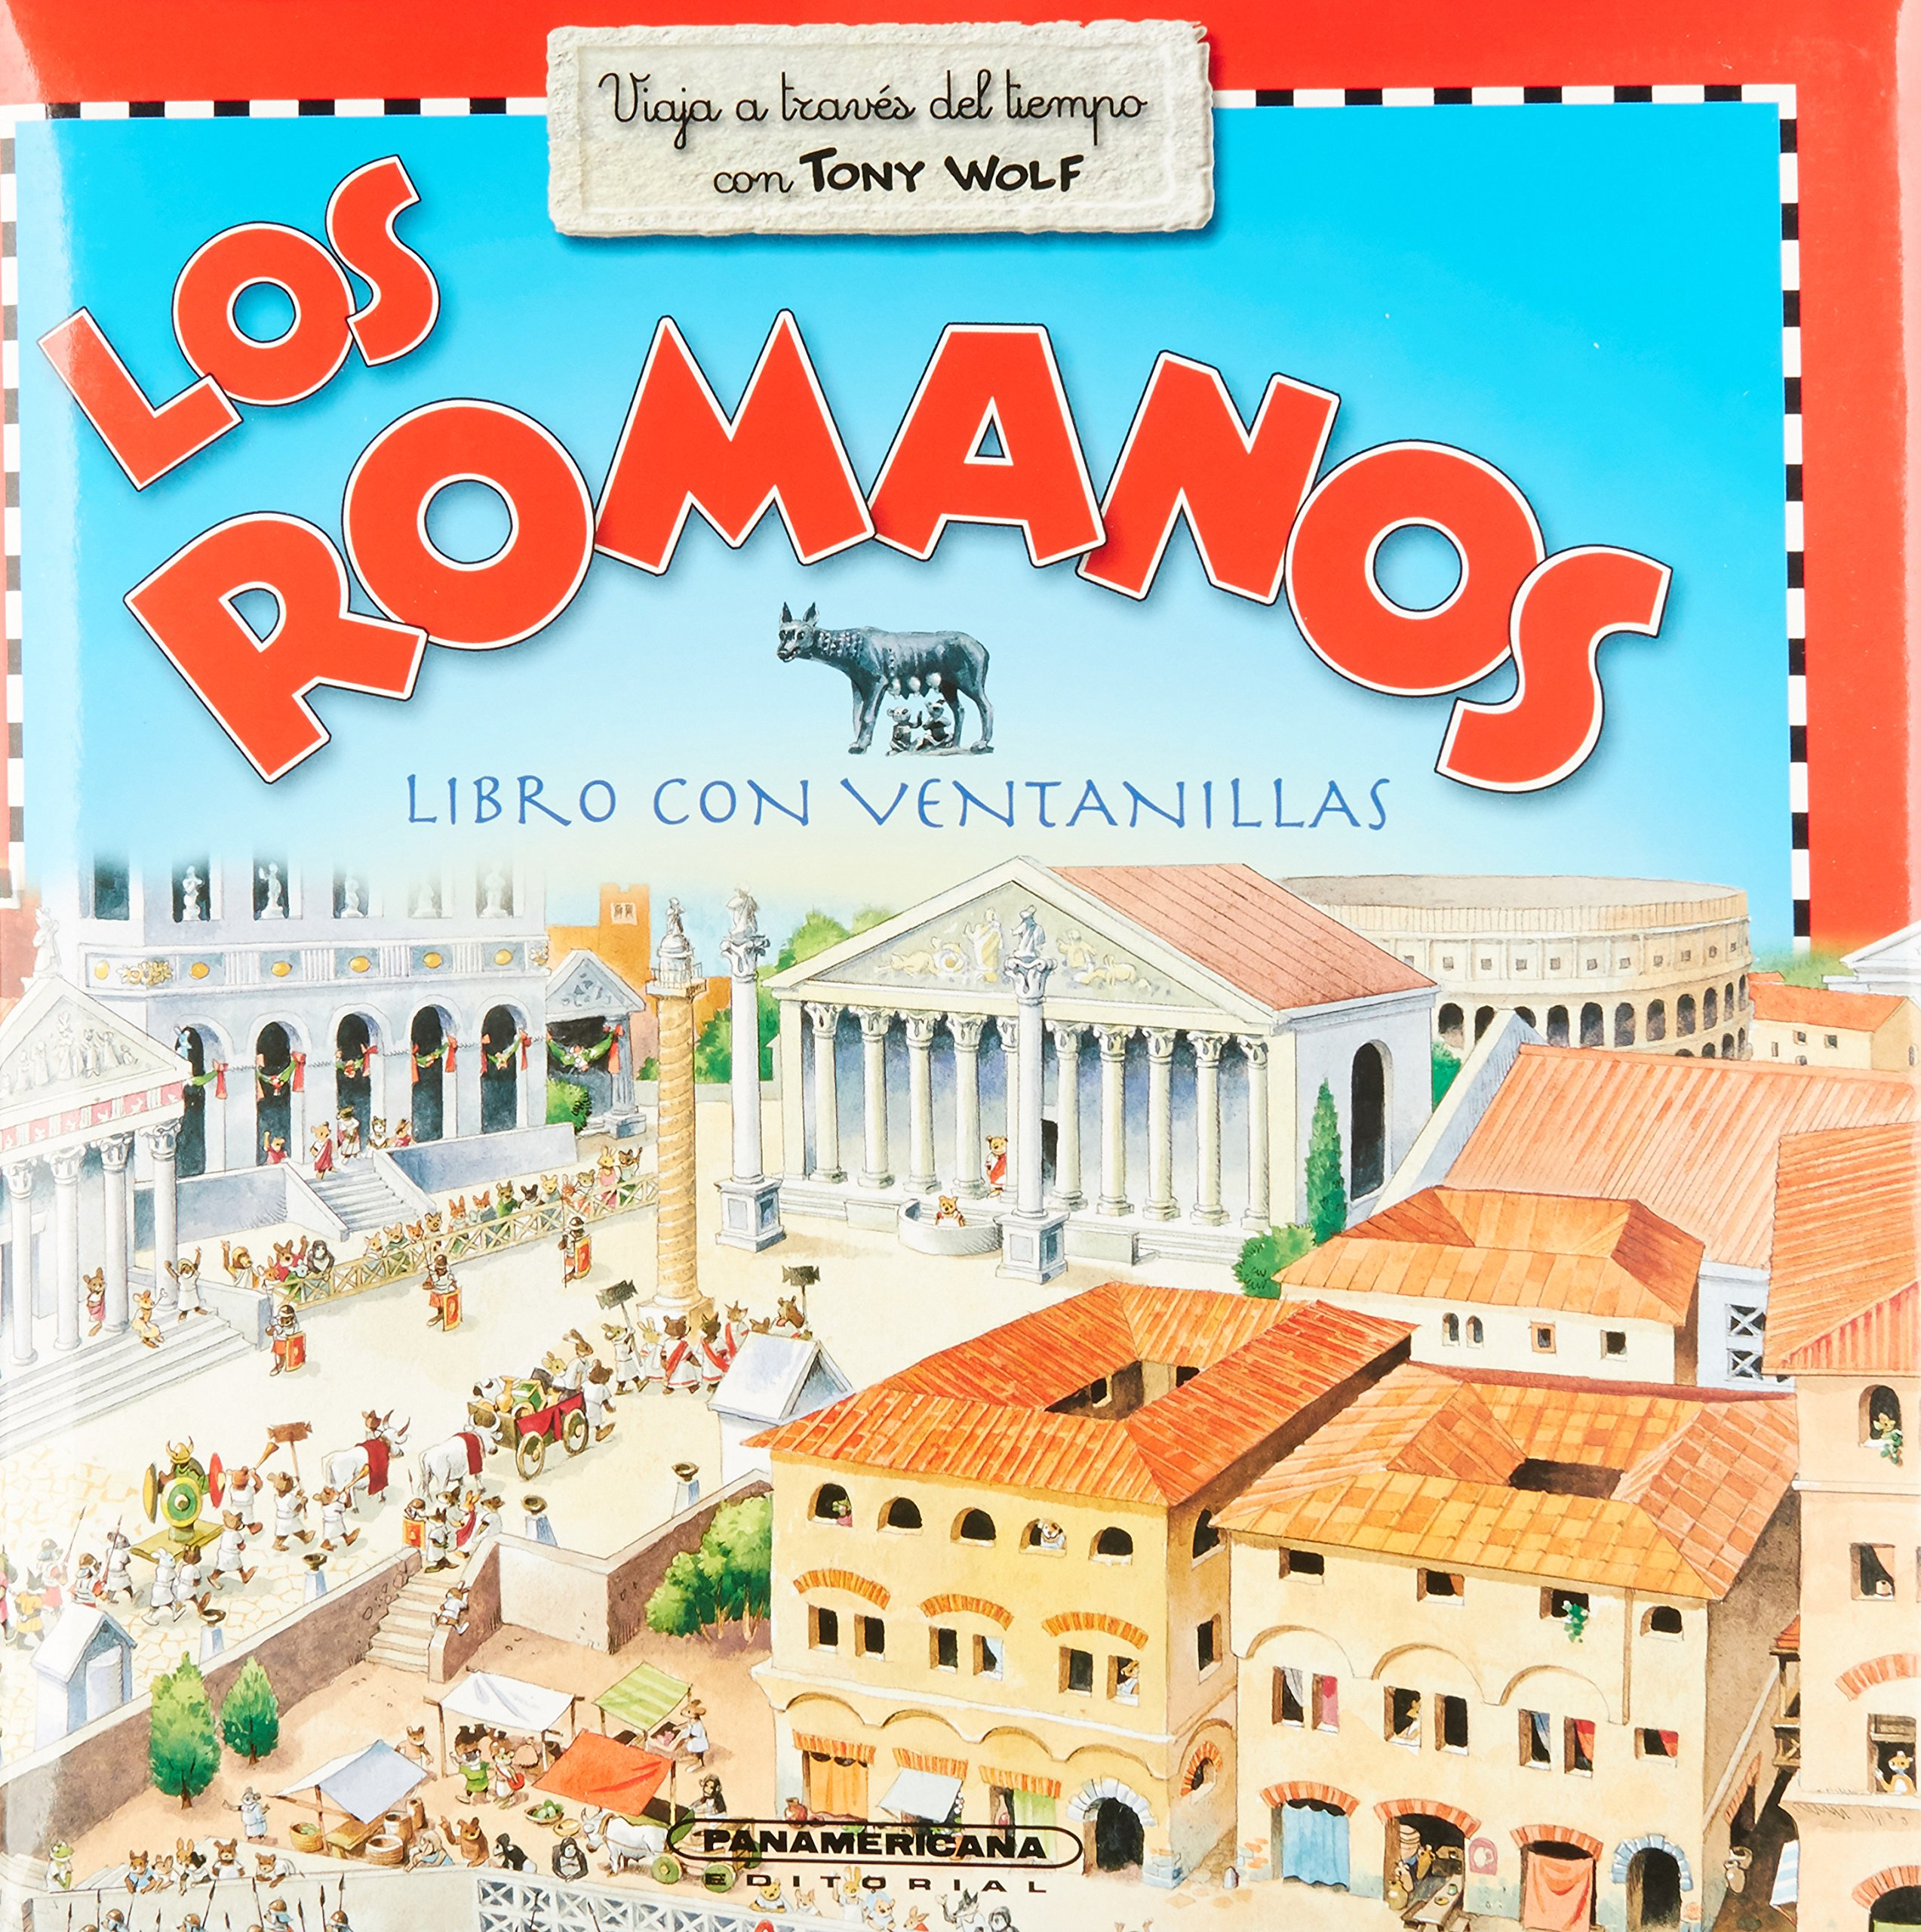 Los romanos / Romans: Con Ventanas / Book With Windows (Spanish Edition): Tony Wolf: 9789583024566: Amazon.com: Books